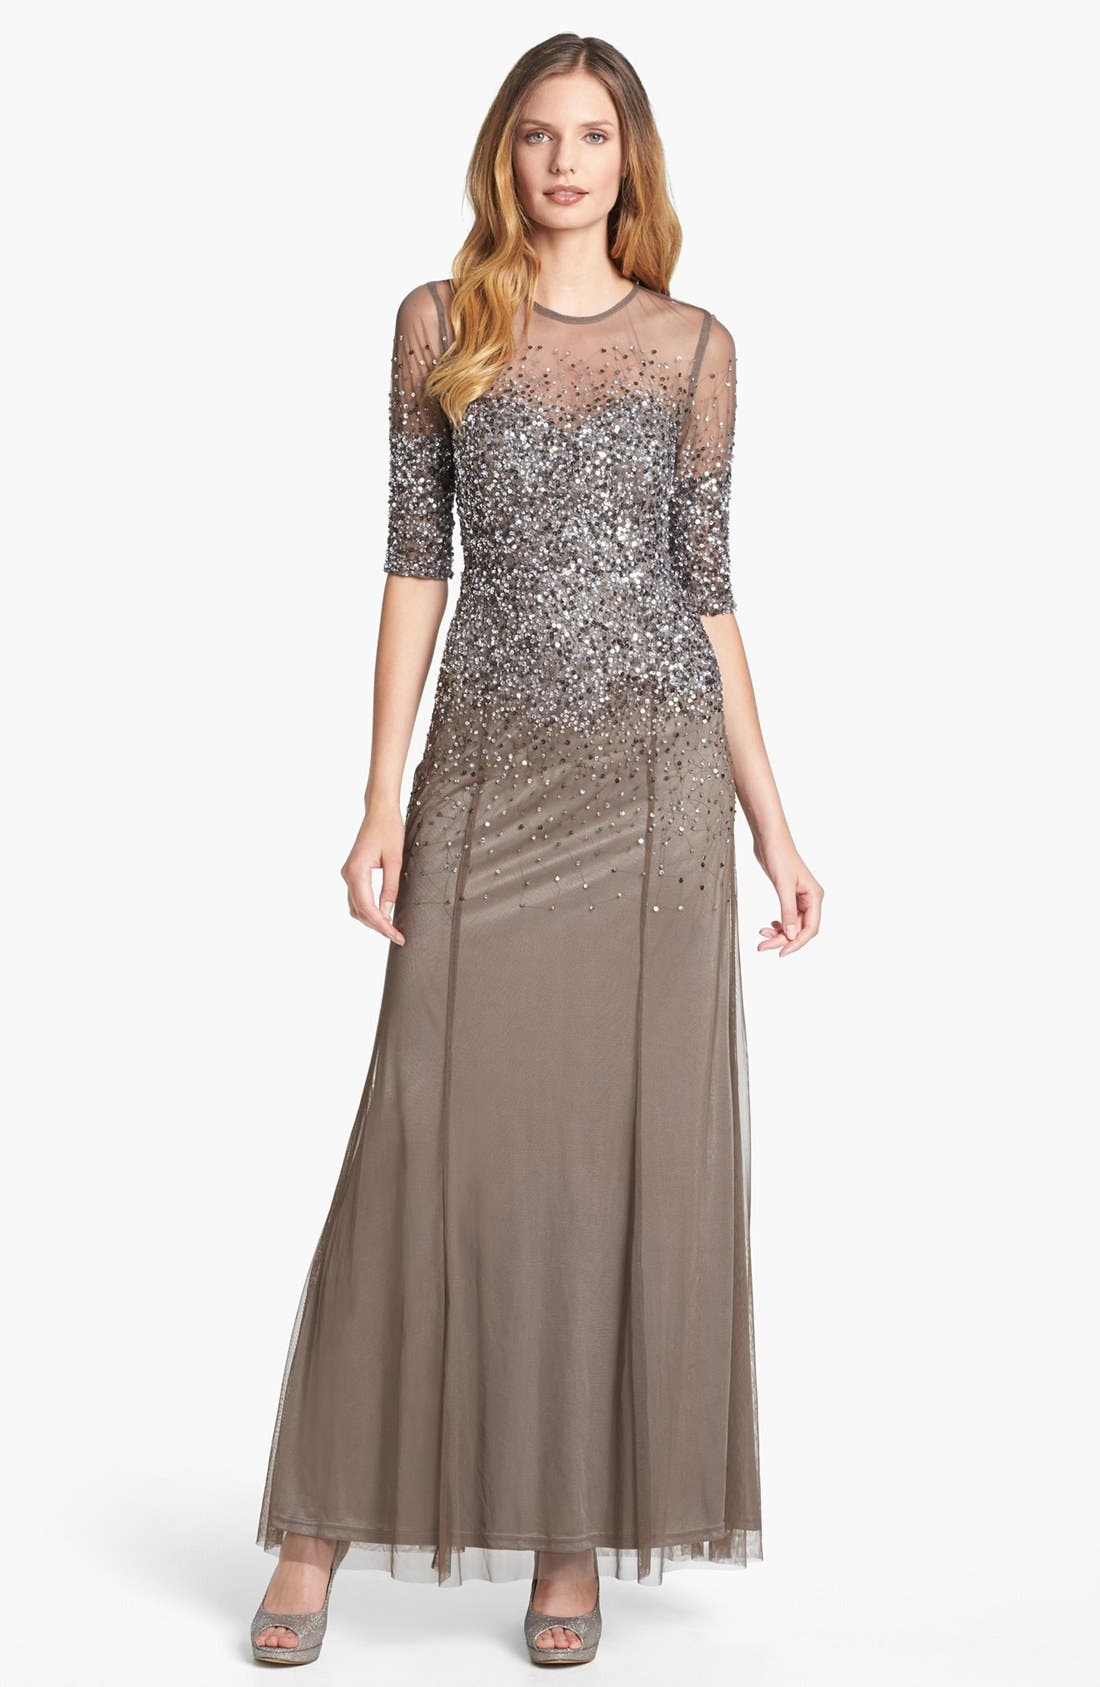 Main Image - Adrianna Papell Beaded Illusion Bodice Mesh Gown